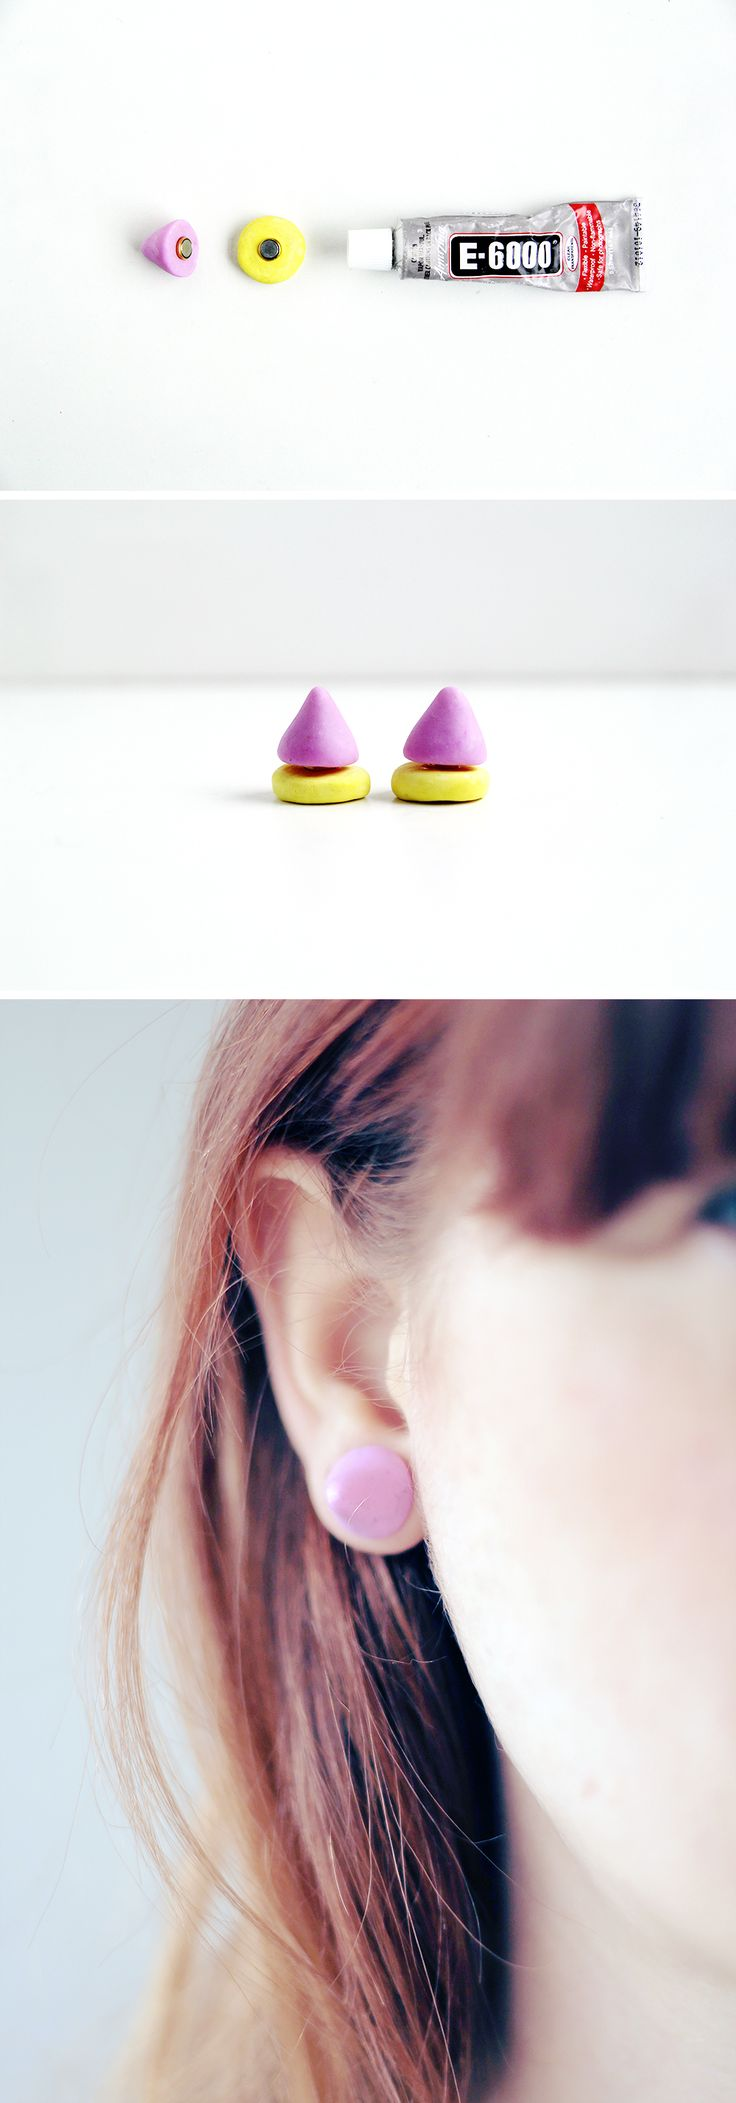 Diy Givenchy Inspired Magnetic Earrings